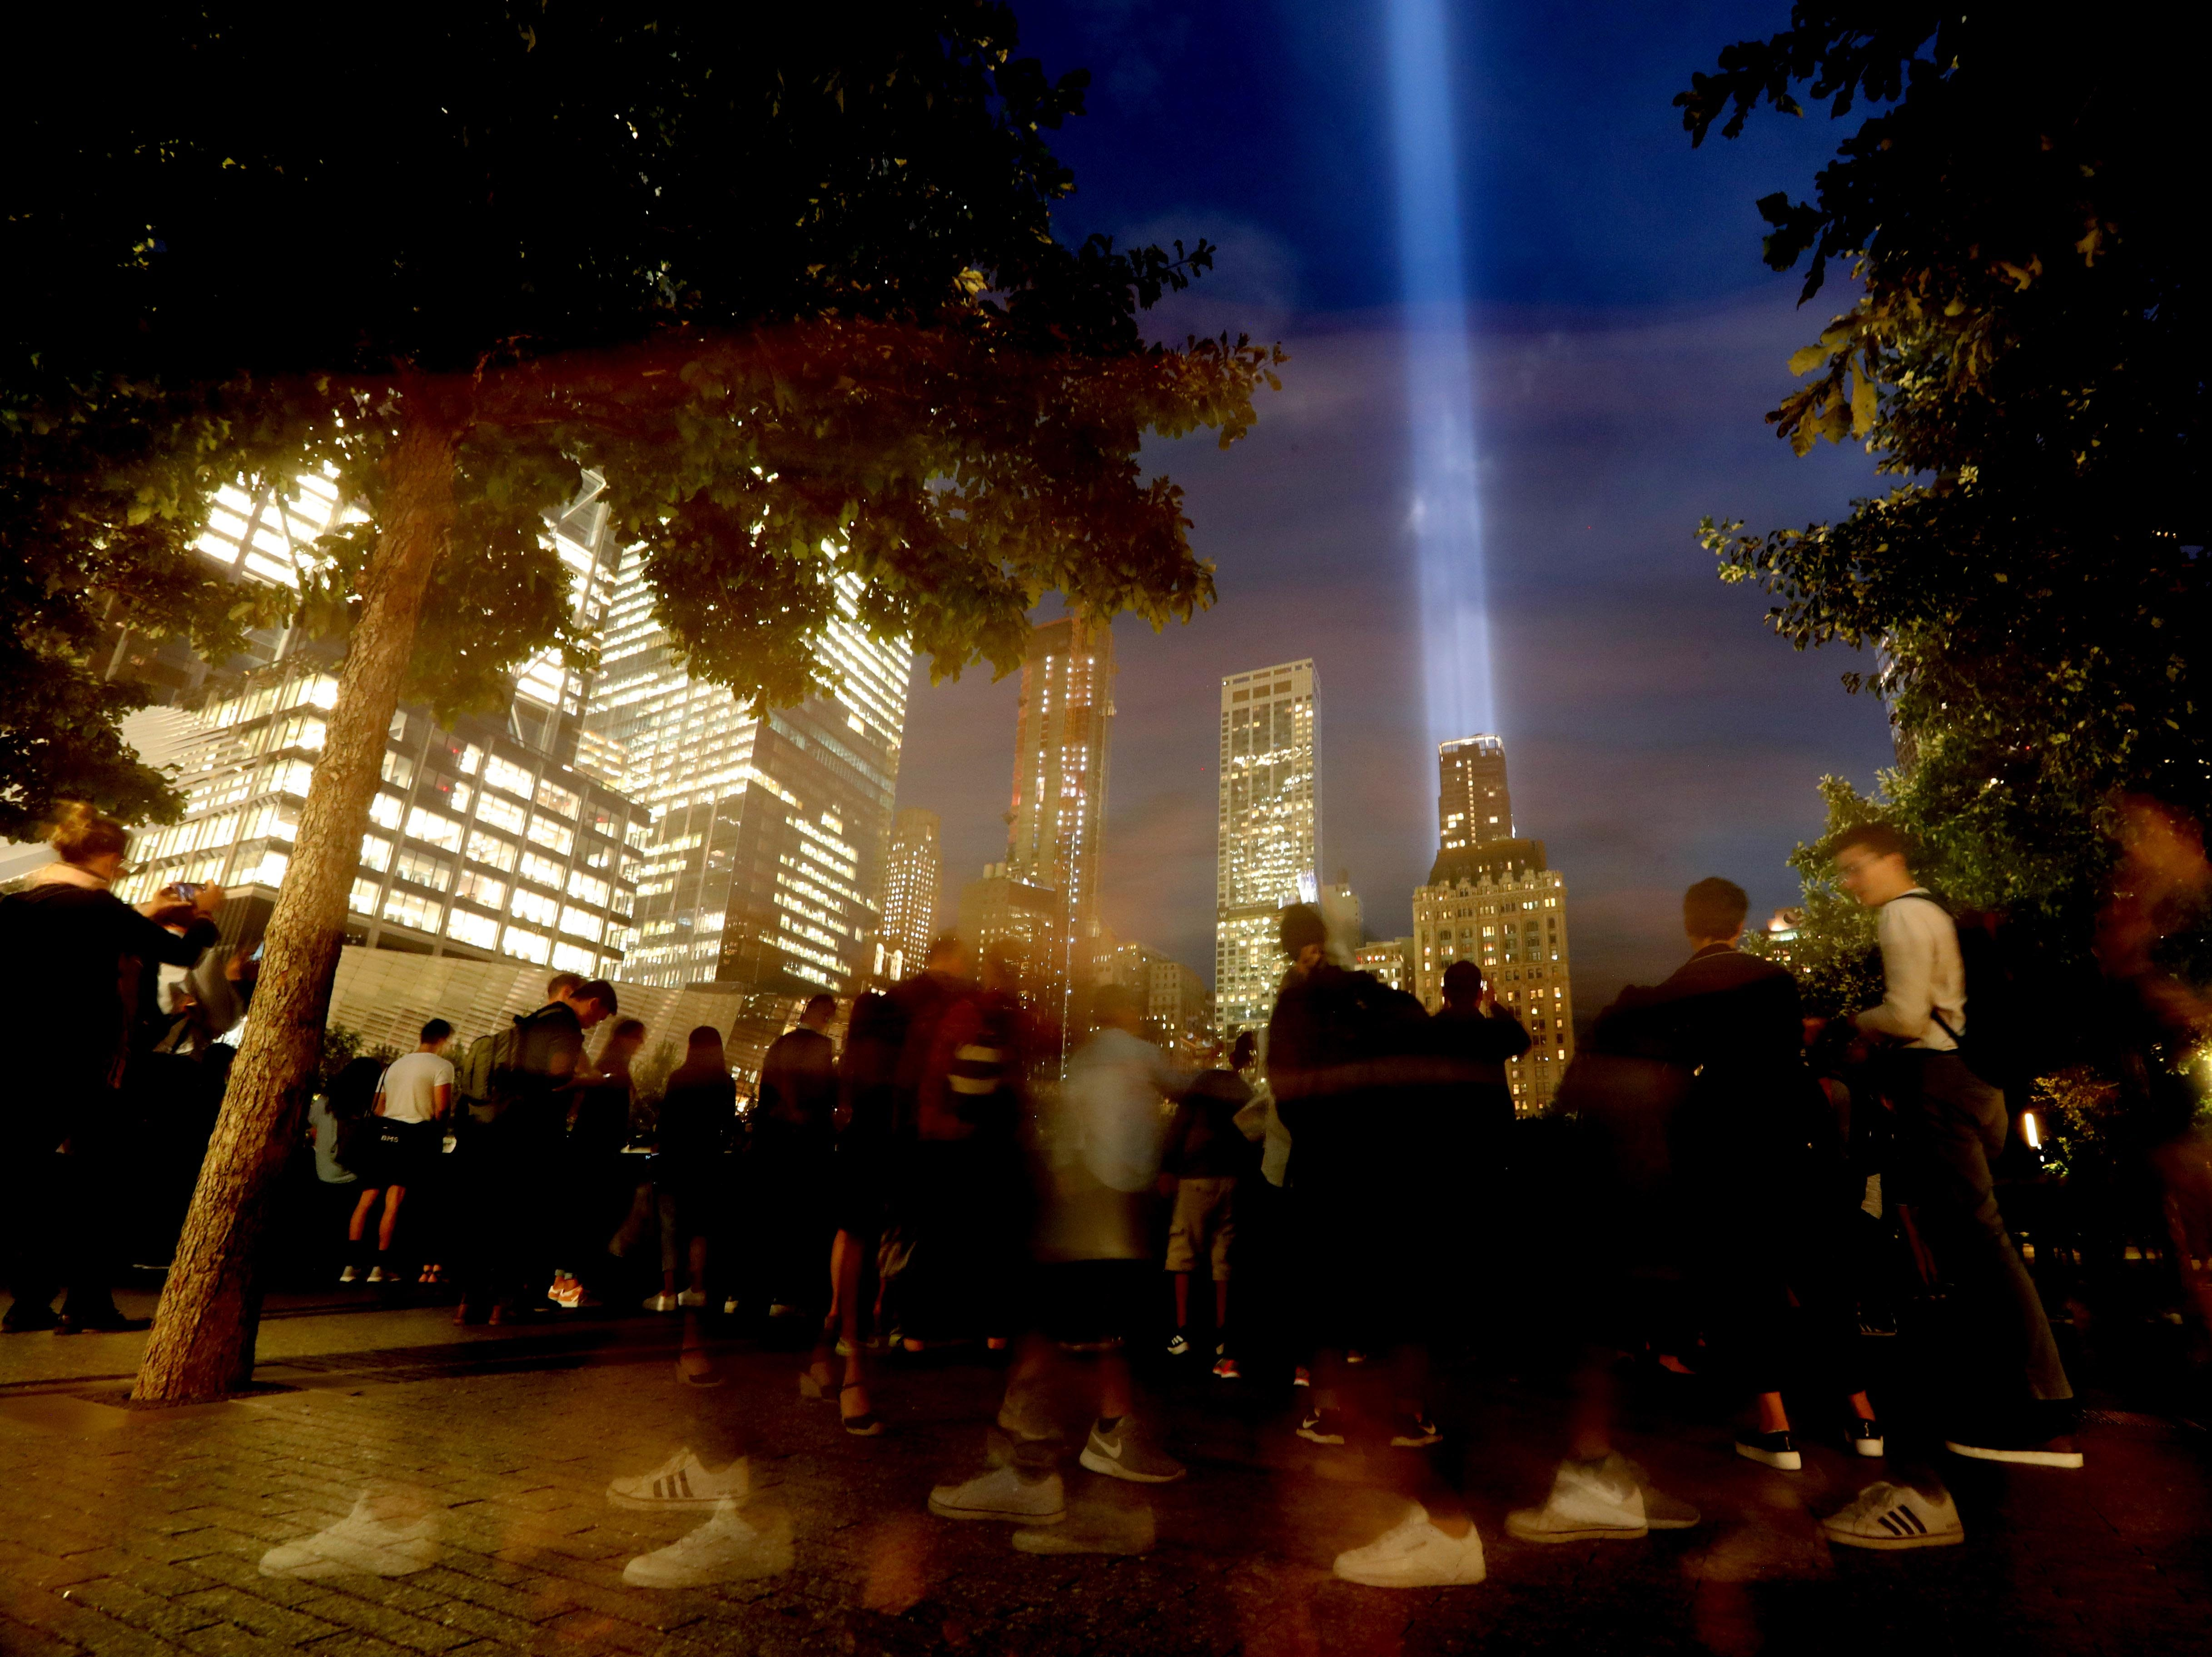 Visitors to the The National September 11 Memorial in New York City take in the Tribute in Light Tuesday, Sept. 11, 2018.  Thousands visited the memorial on the 17th anniversary of the attacks of Sept. 11, 2001.